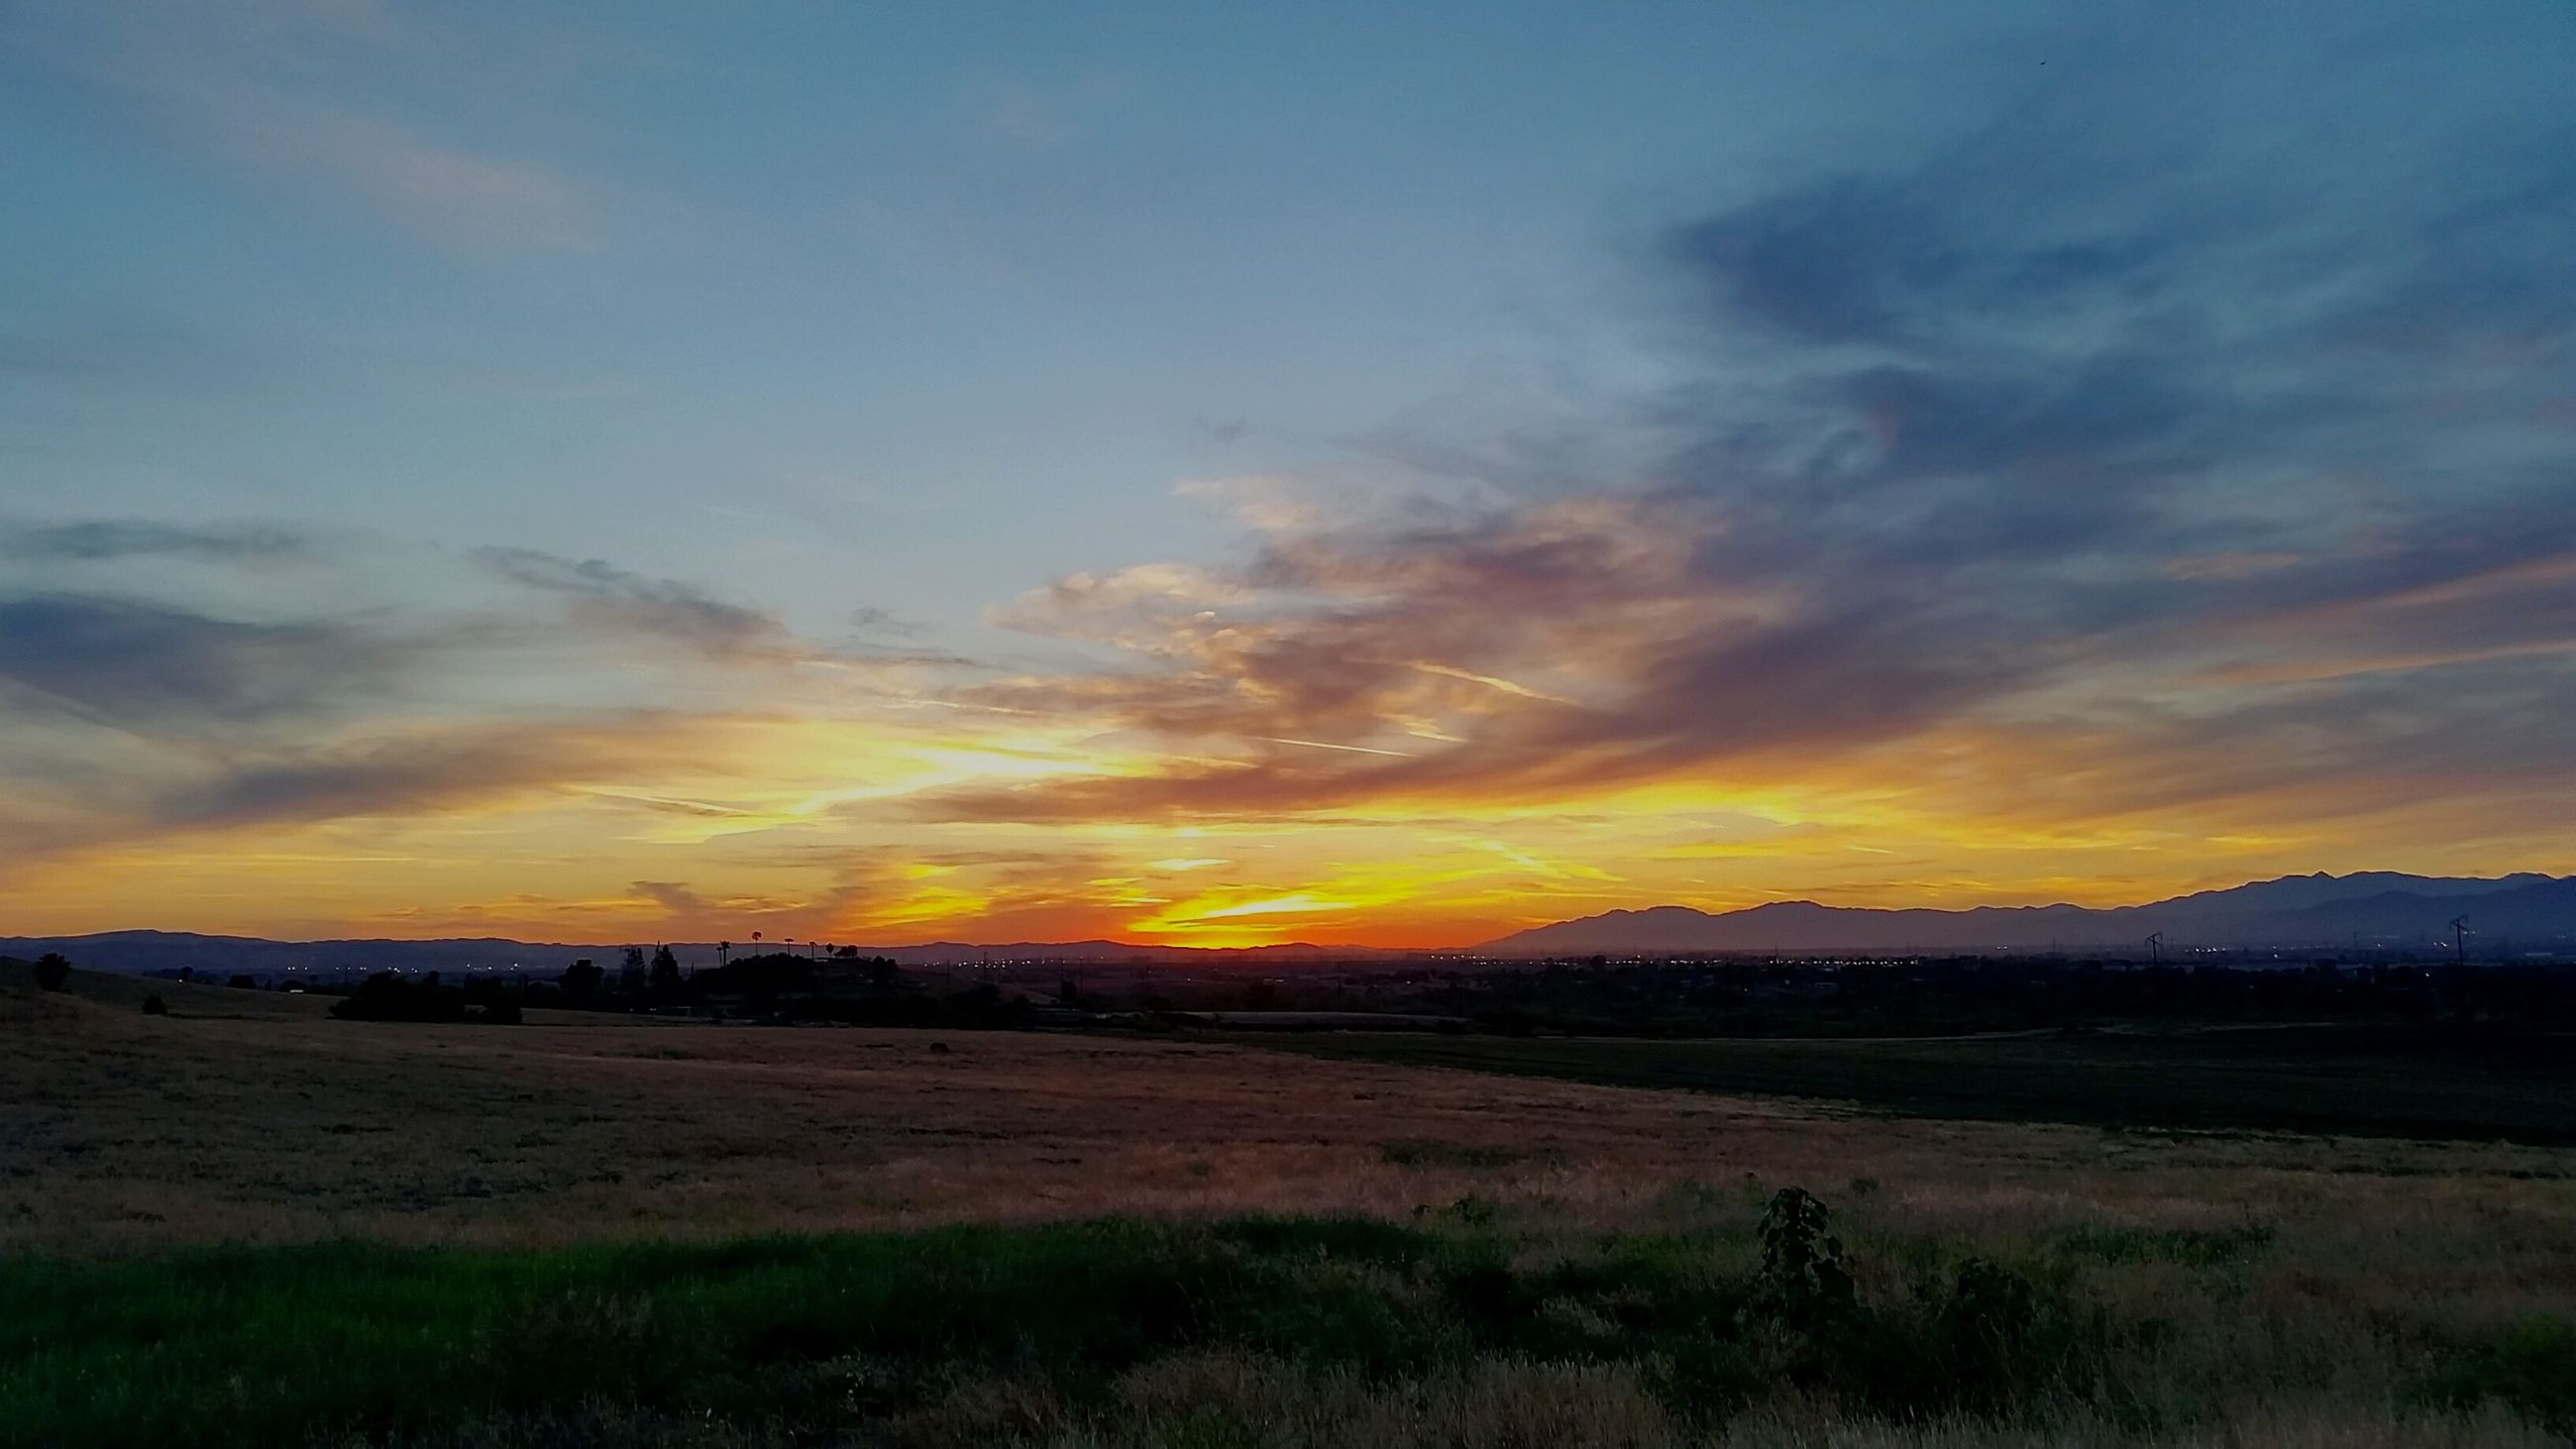 sunset, sky, tranquil scene, scenics, tranquility, cloud - sky, orange color, beauty in nature, landscape, idyllic, water, nature, grass, cloudy, cloud, field, dramatic sky, outdoors, moody sky, non-urban scene